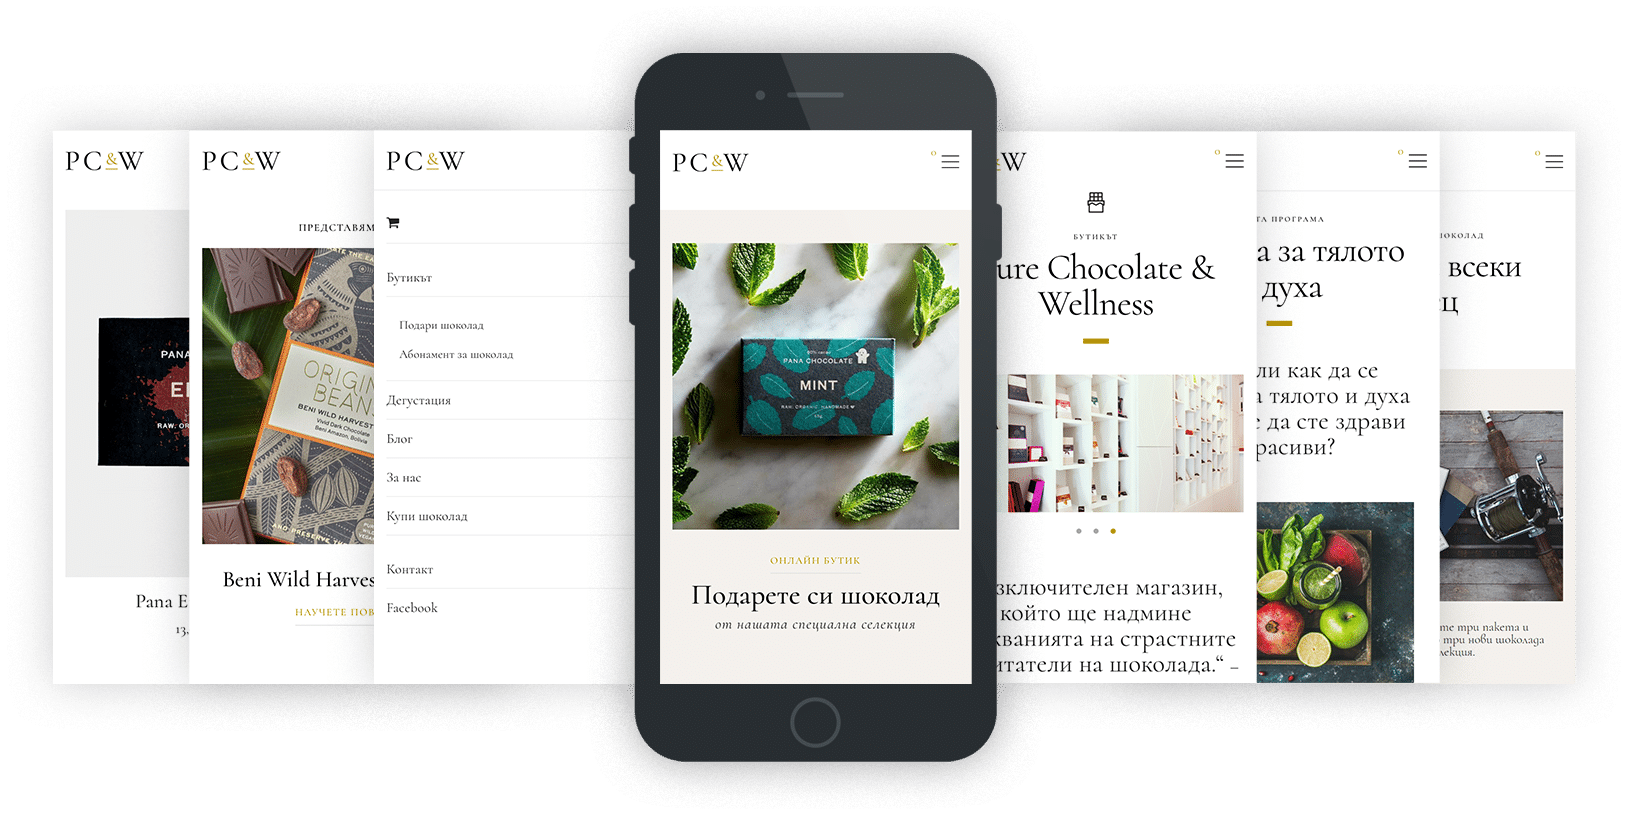 pcw-website-mobile